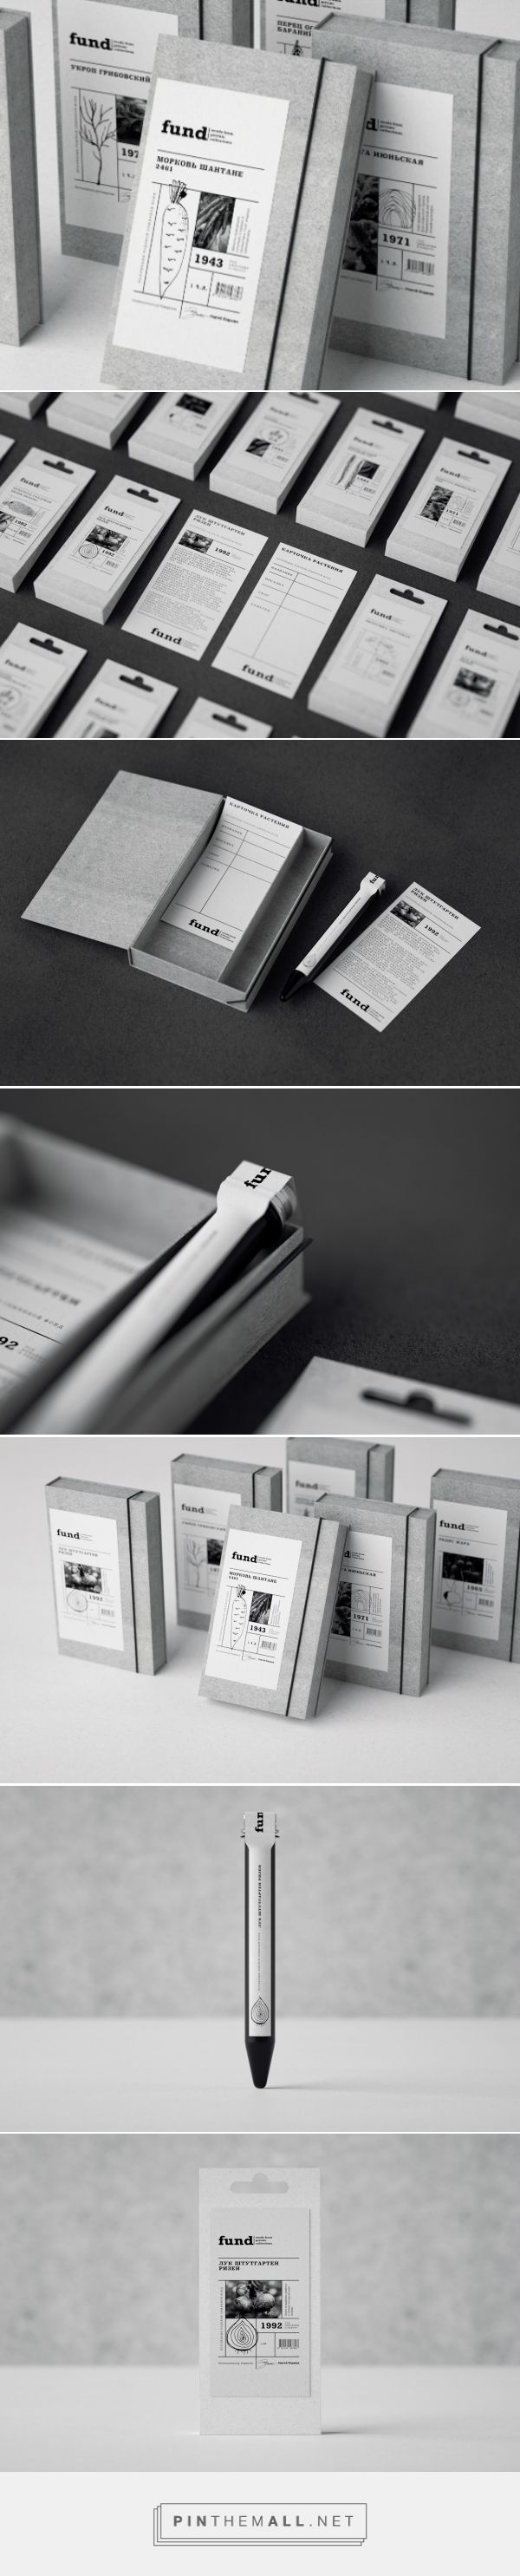 FUND - Packaging of the World - Creative Package Design Gallery - http://www.packagingoftheworld.com/2018/01/fund.html